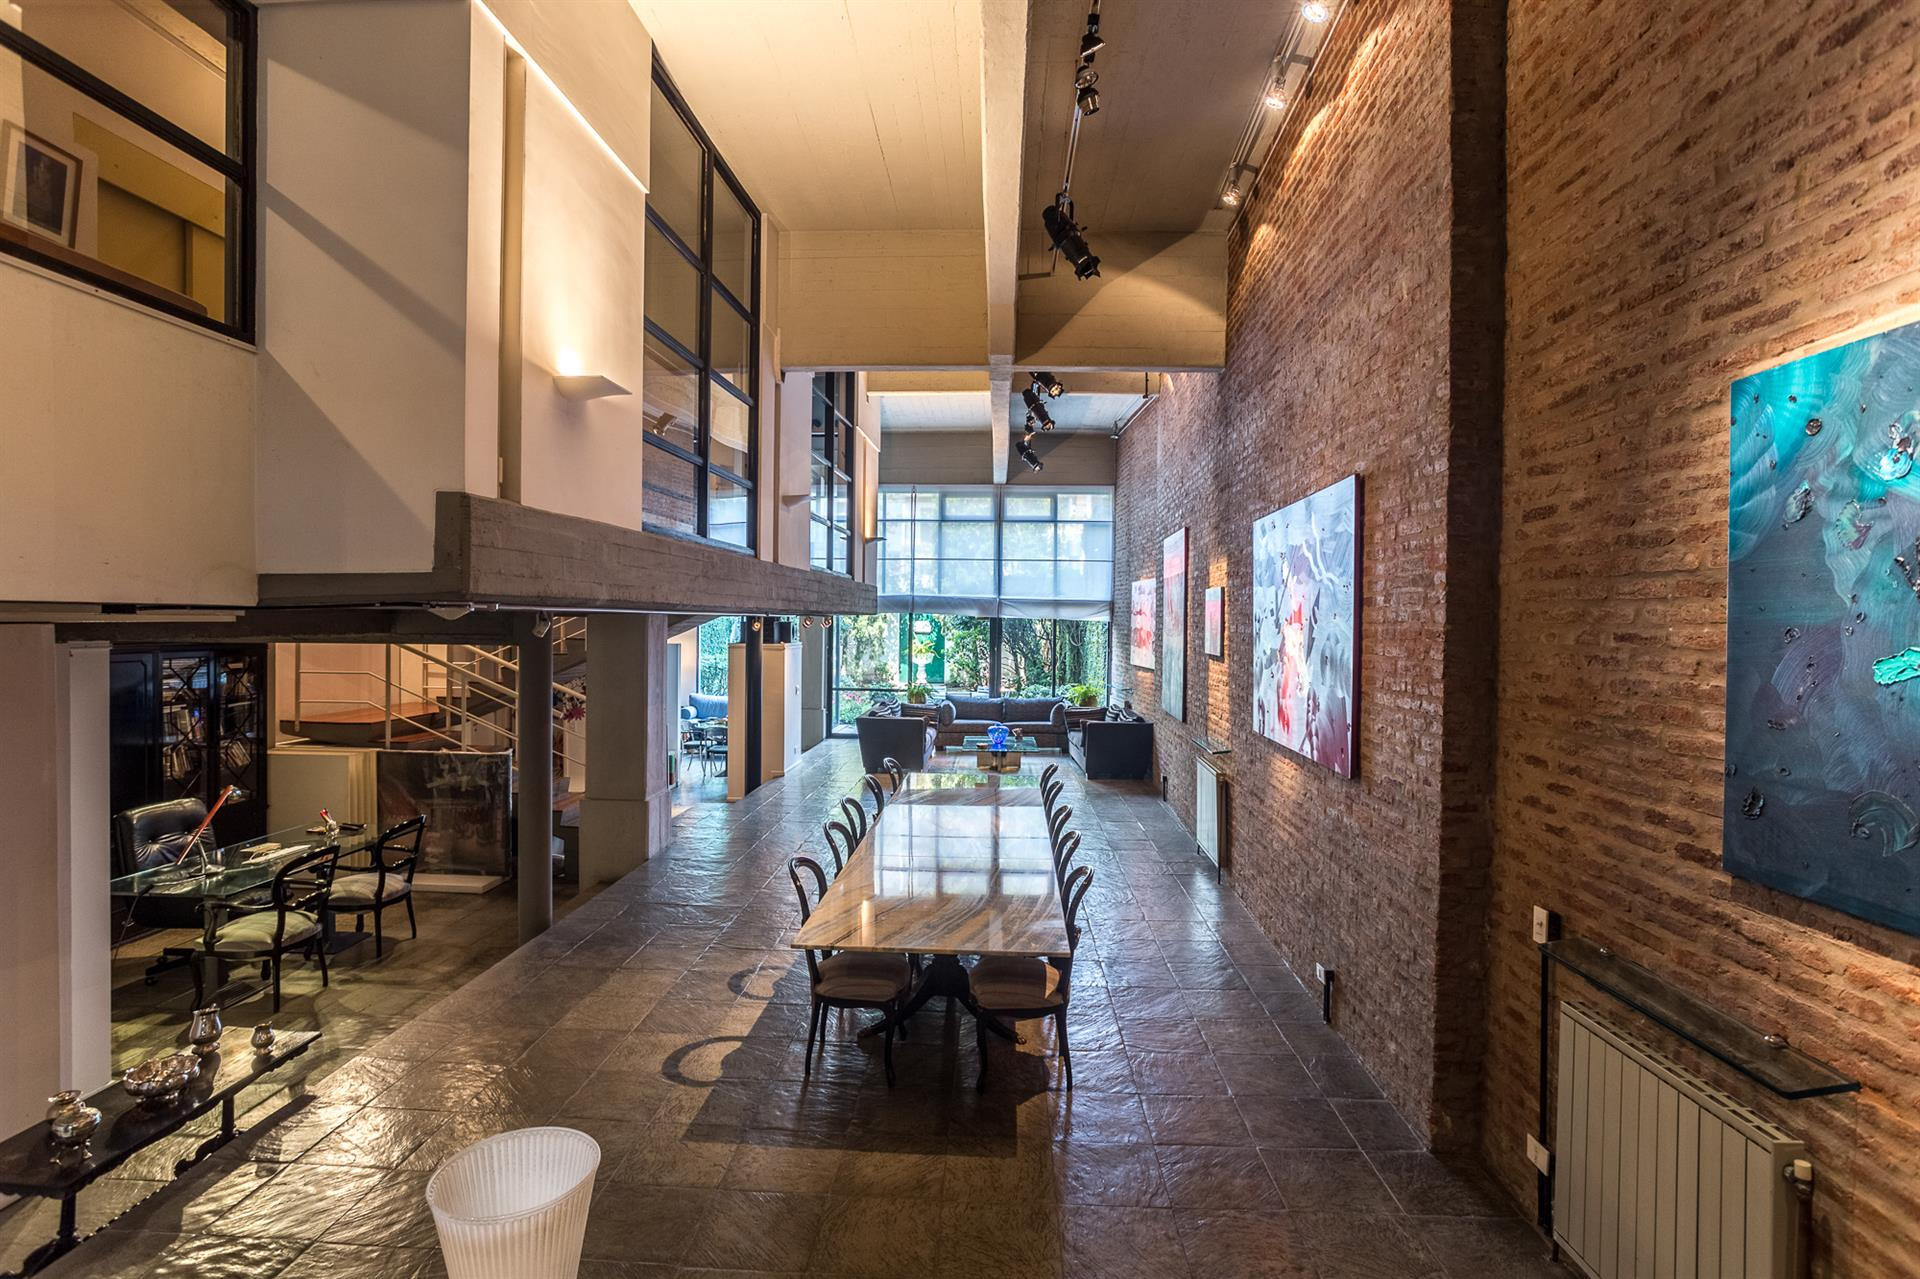 INCREDIBLE NEW YORK-STYLE LOFT: A Luxury Home For Sale In